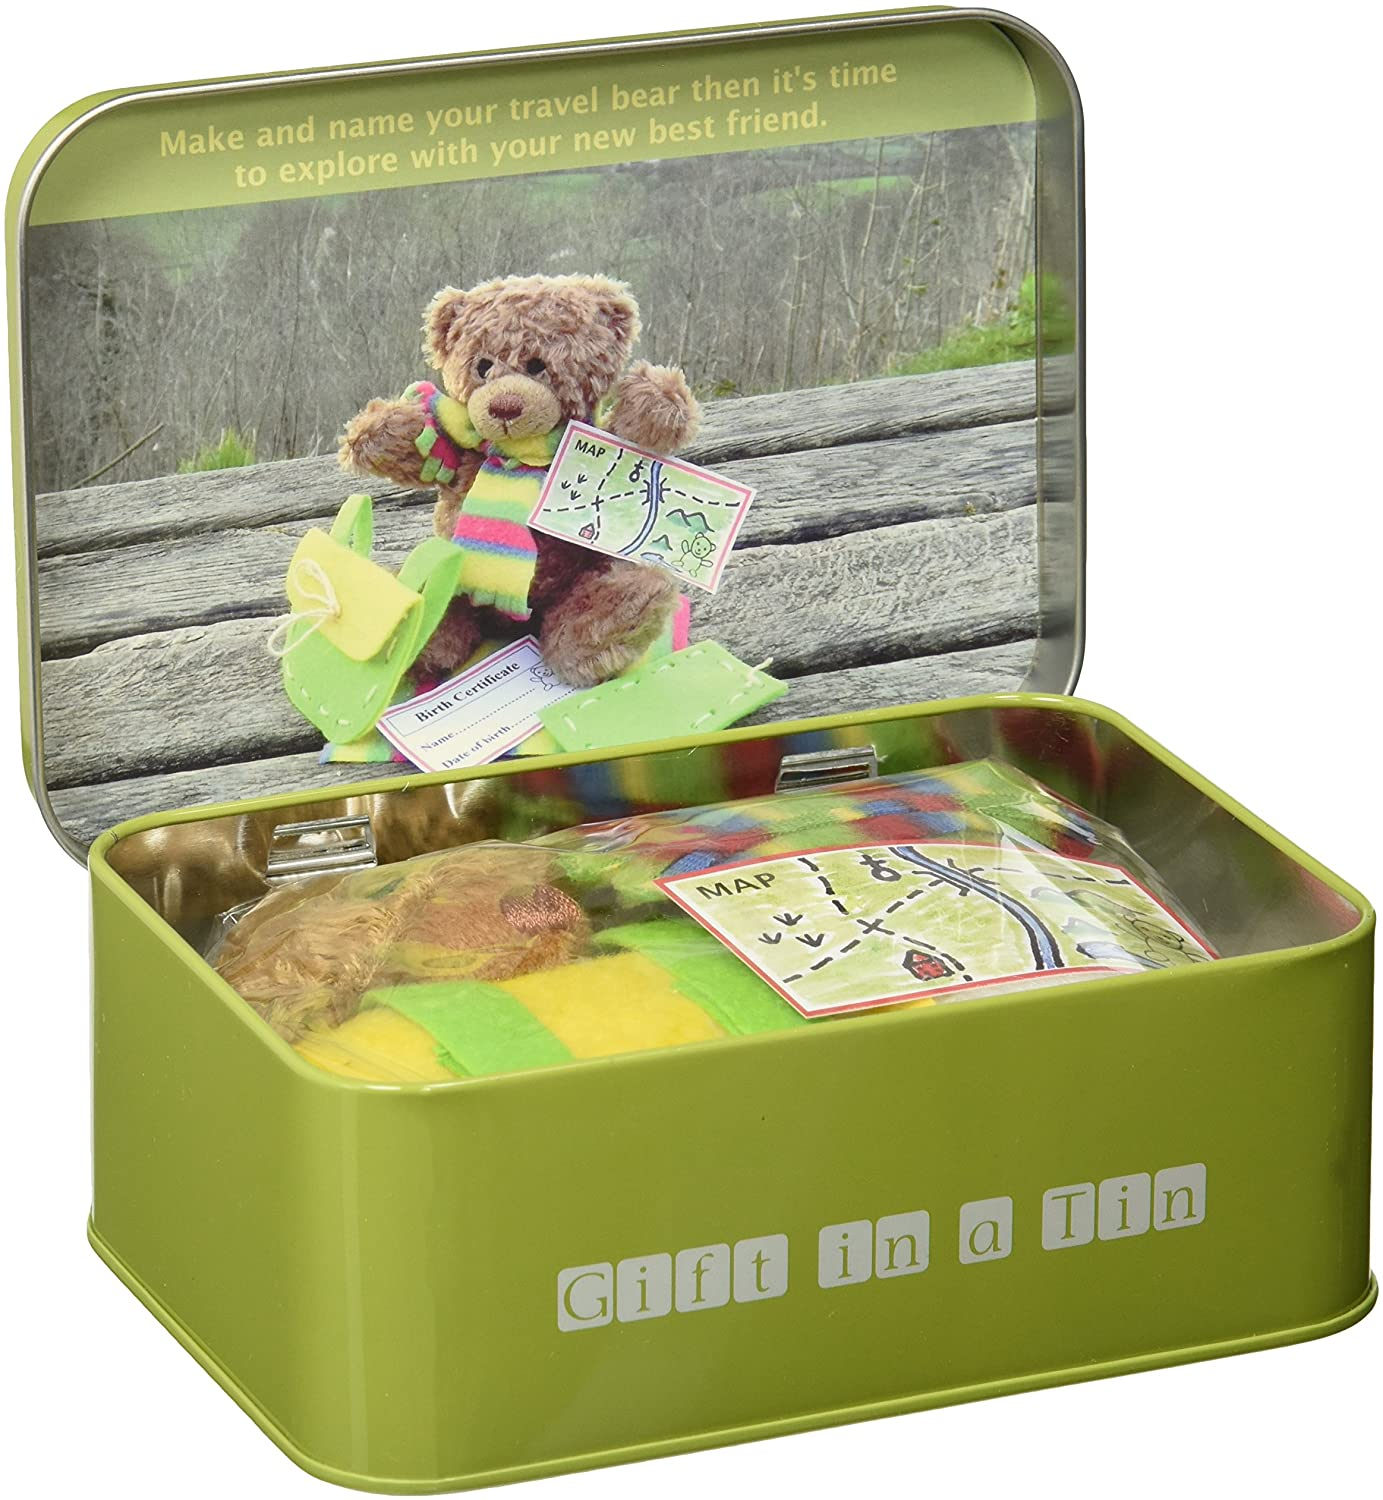 Image for Teddy in a Tin - Travel Bear - Gift in a Tin by Apples to Pears